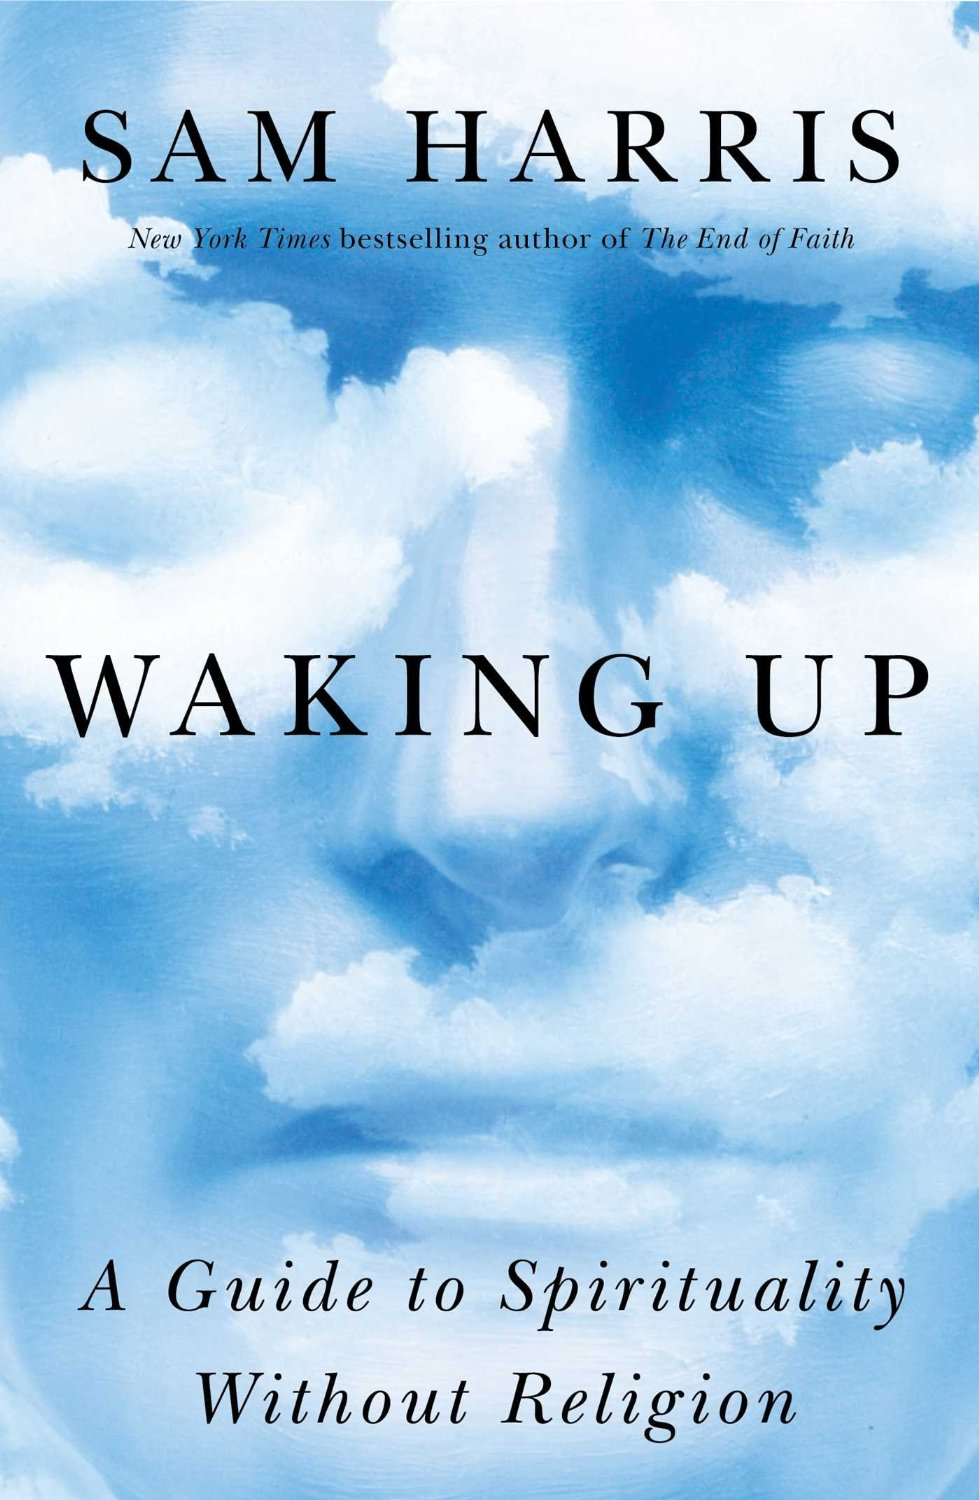 Waking Up - By Sam Harris